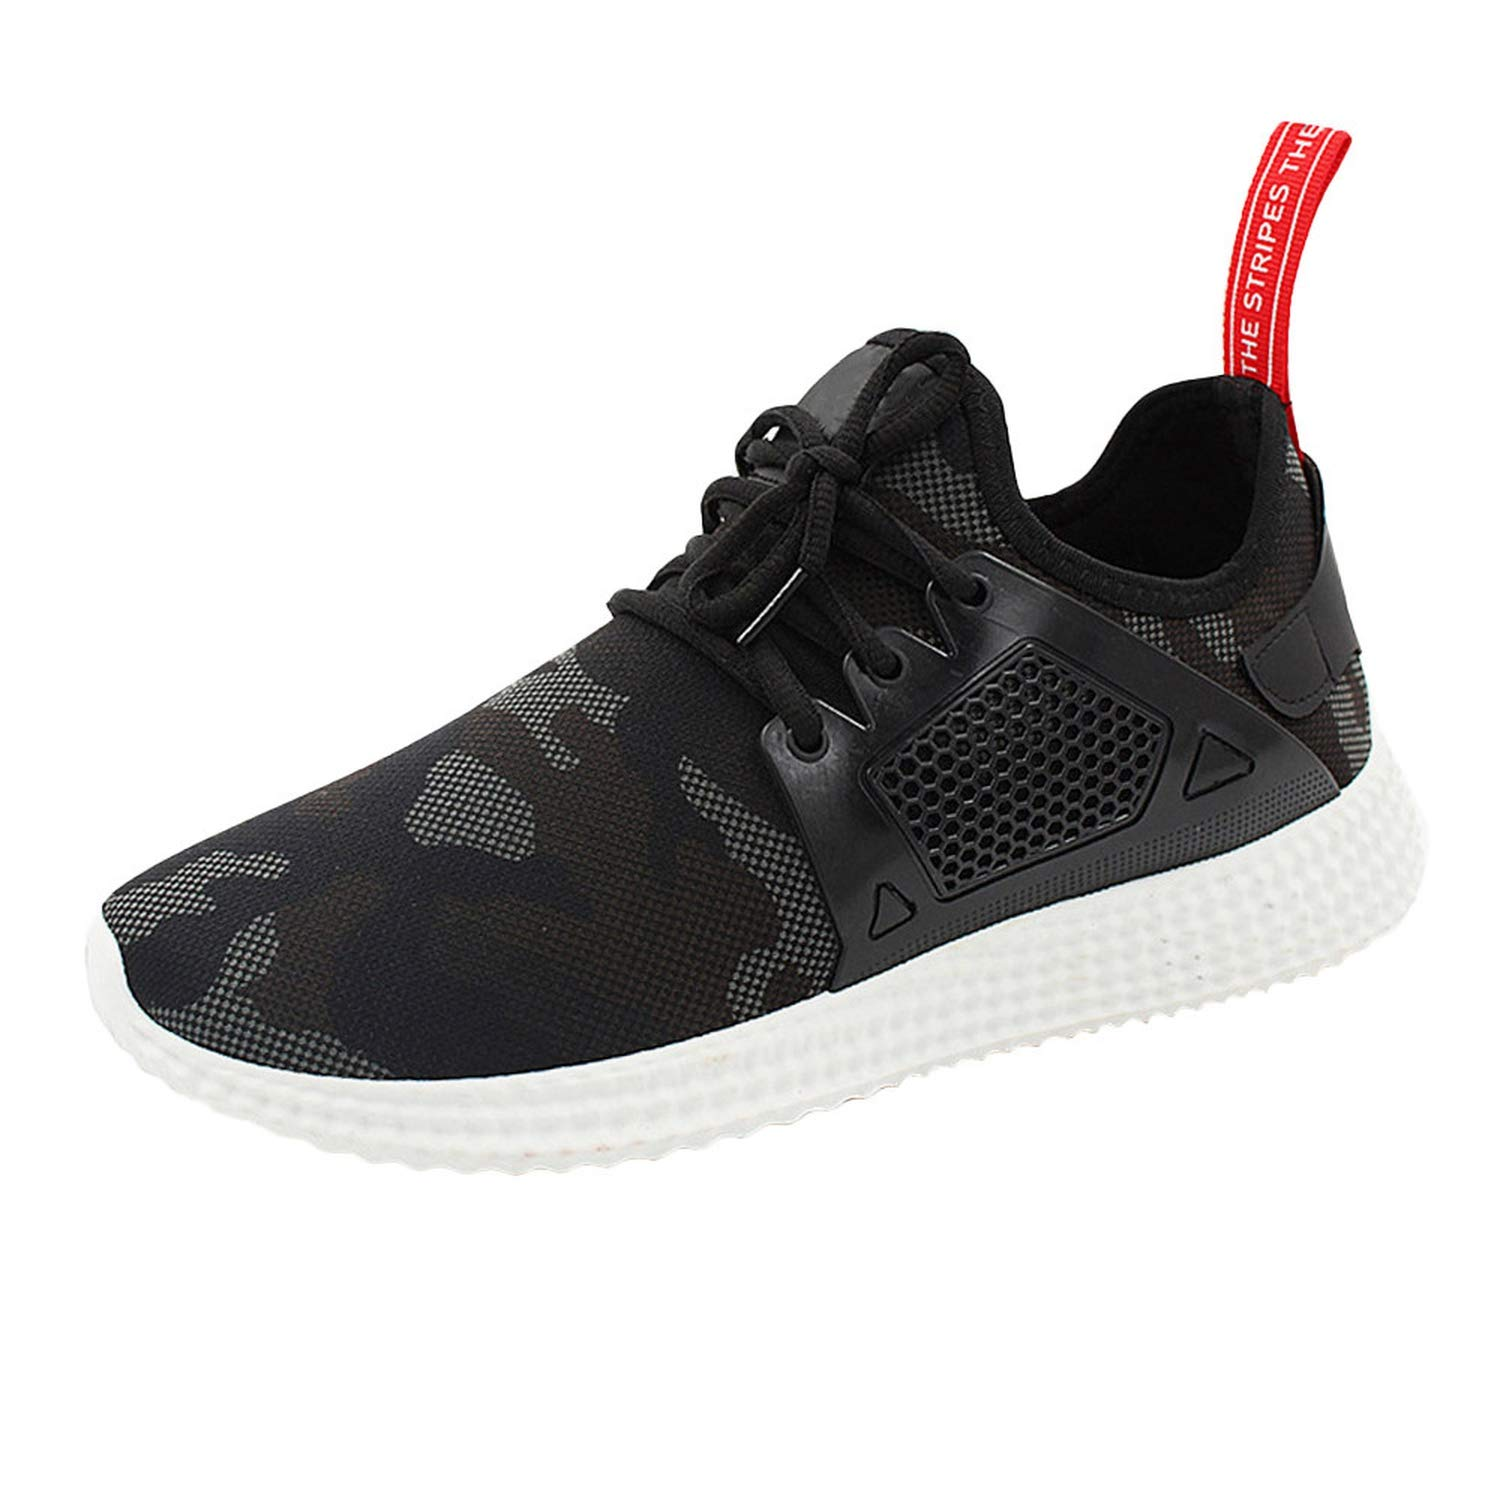 Amazon.com | Fashion Mens Sneakers Camouflage Shoes Zapatos de Hombre Breathable Casual Shoes for Men#L3, Black, 8, China | Fashion Sneakers